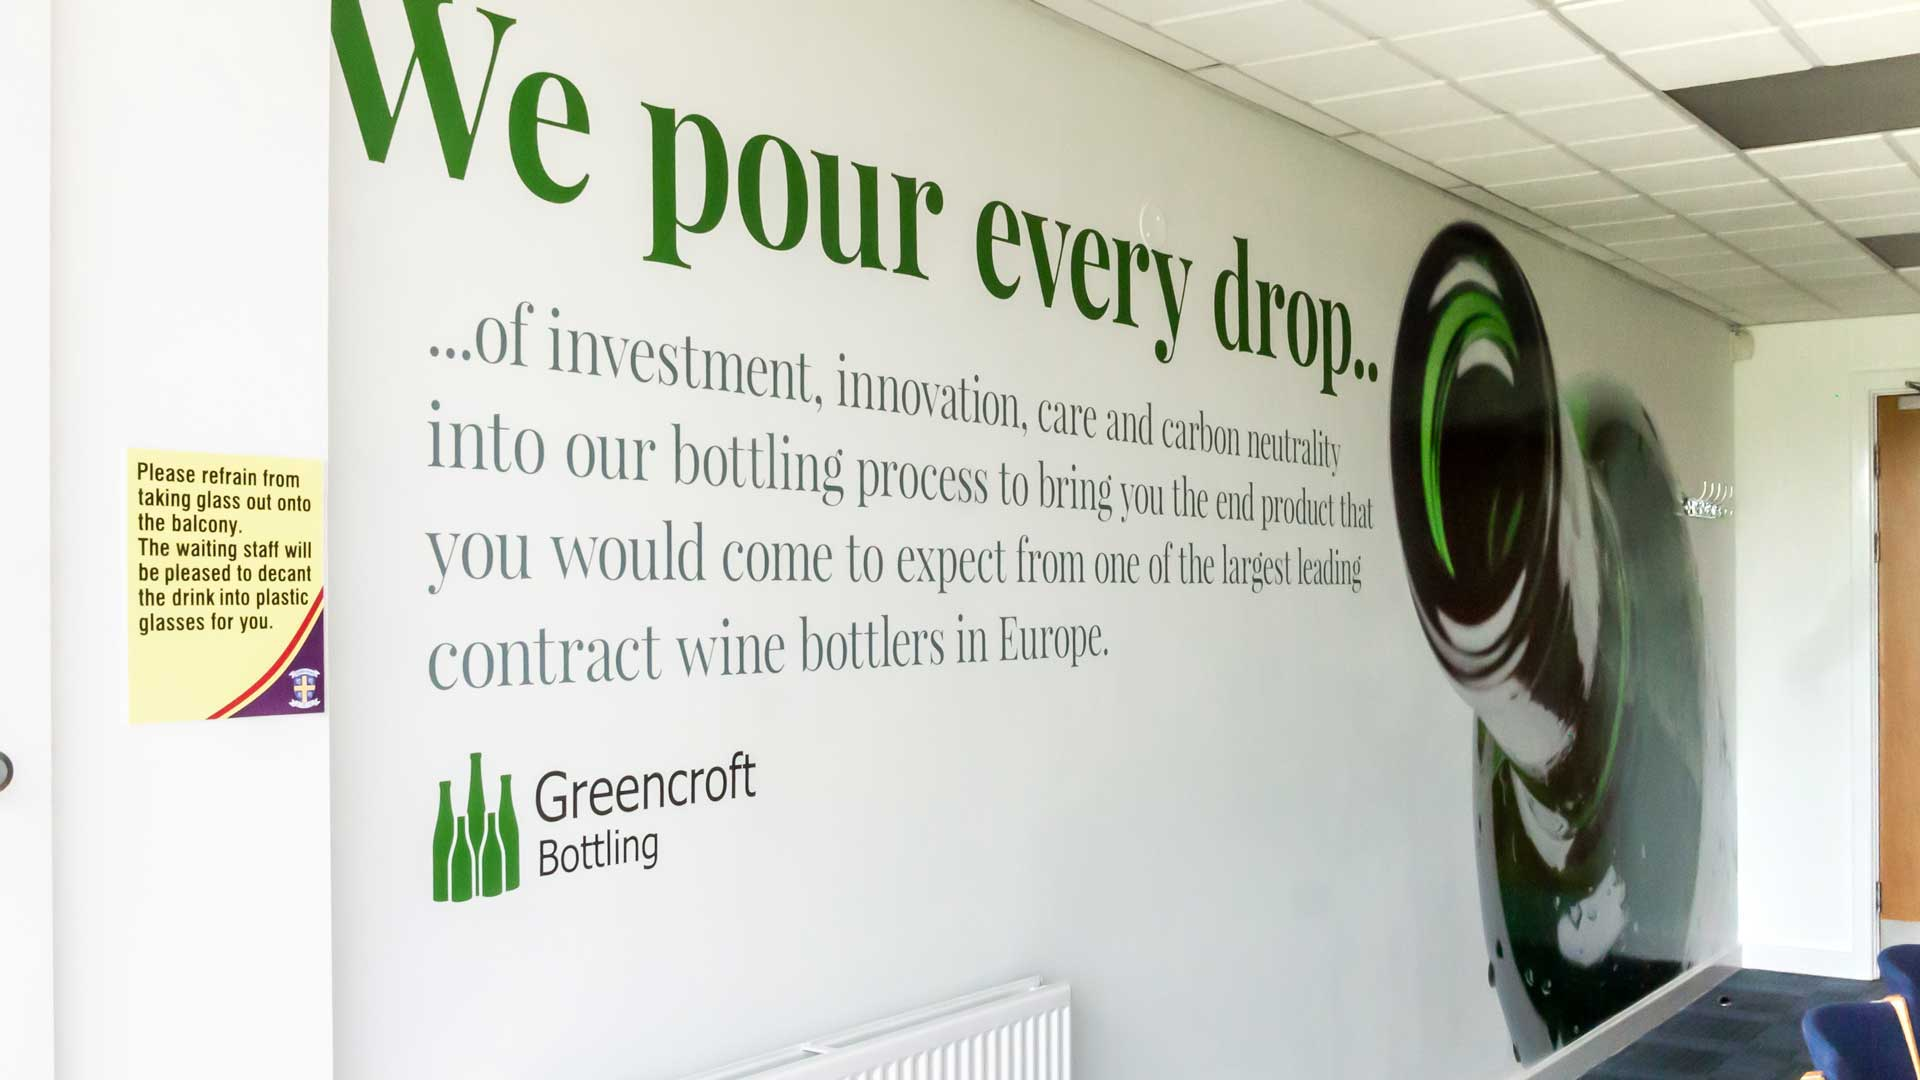 Greencroft Bottling Wall Graphic Design at an Angle